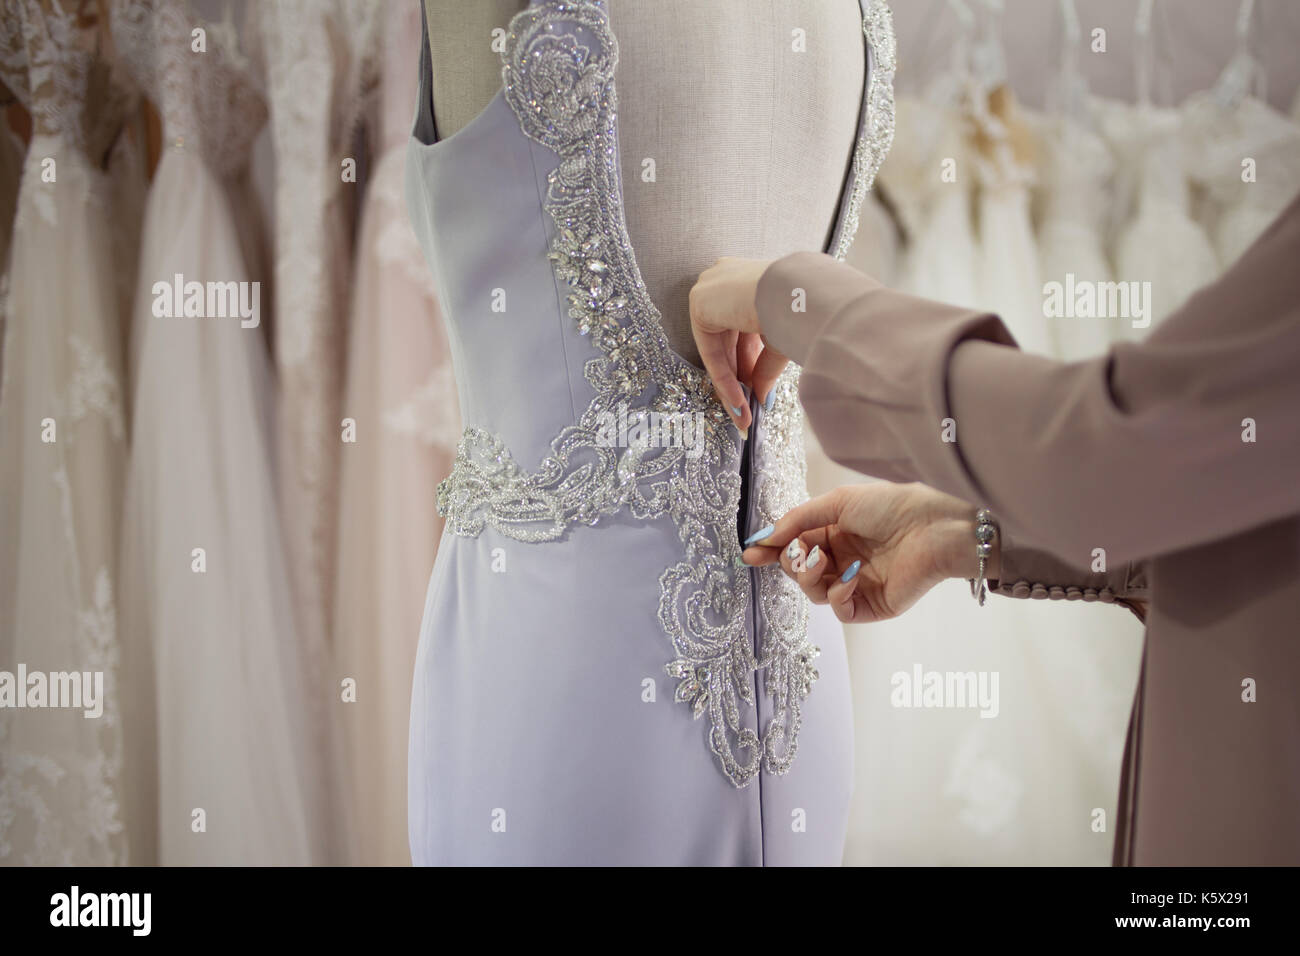 Dress Retailer Stock Photos & Dress Retailer Stock Images